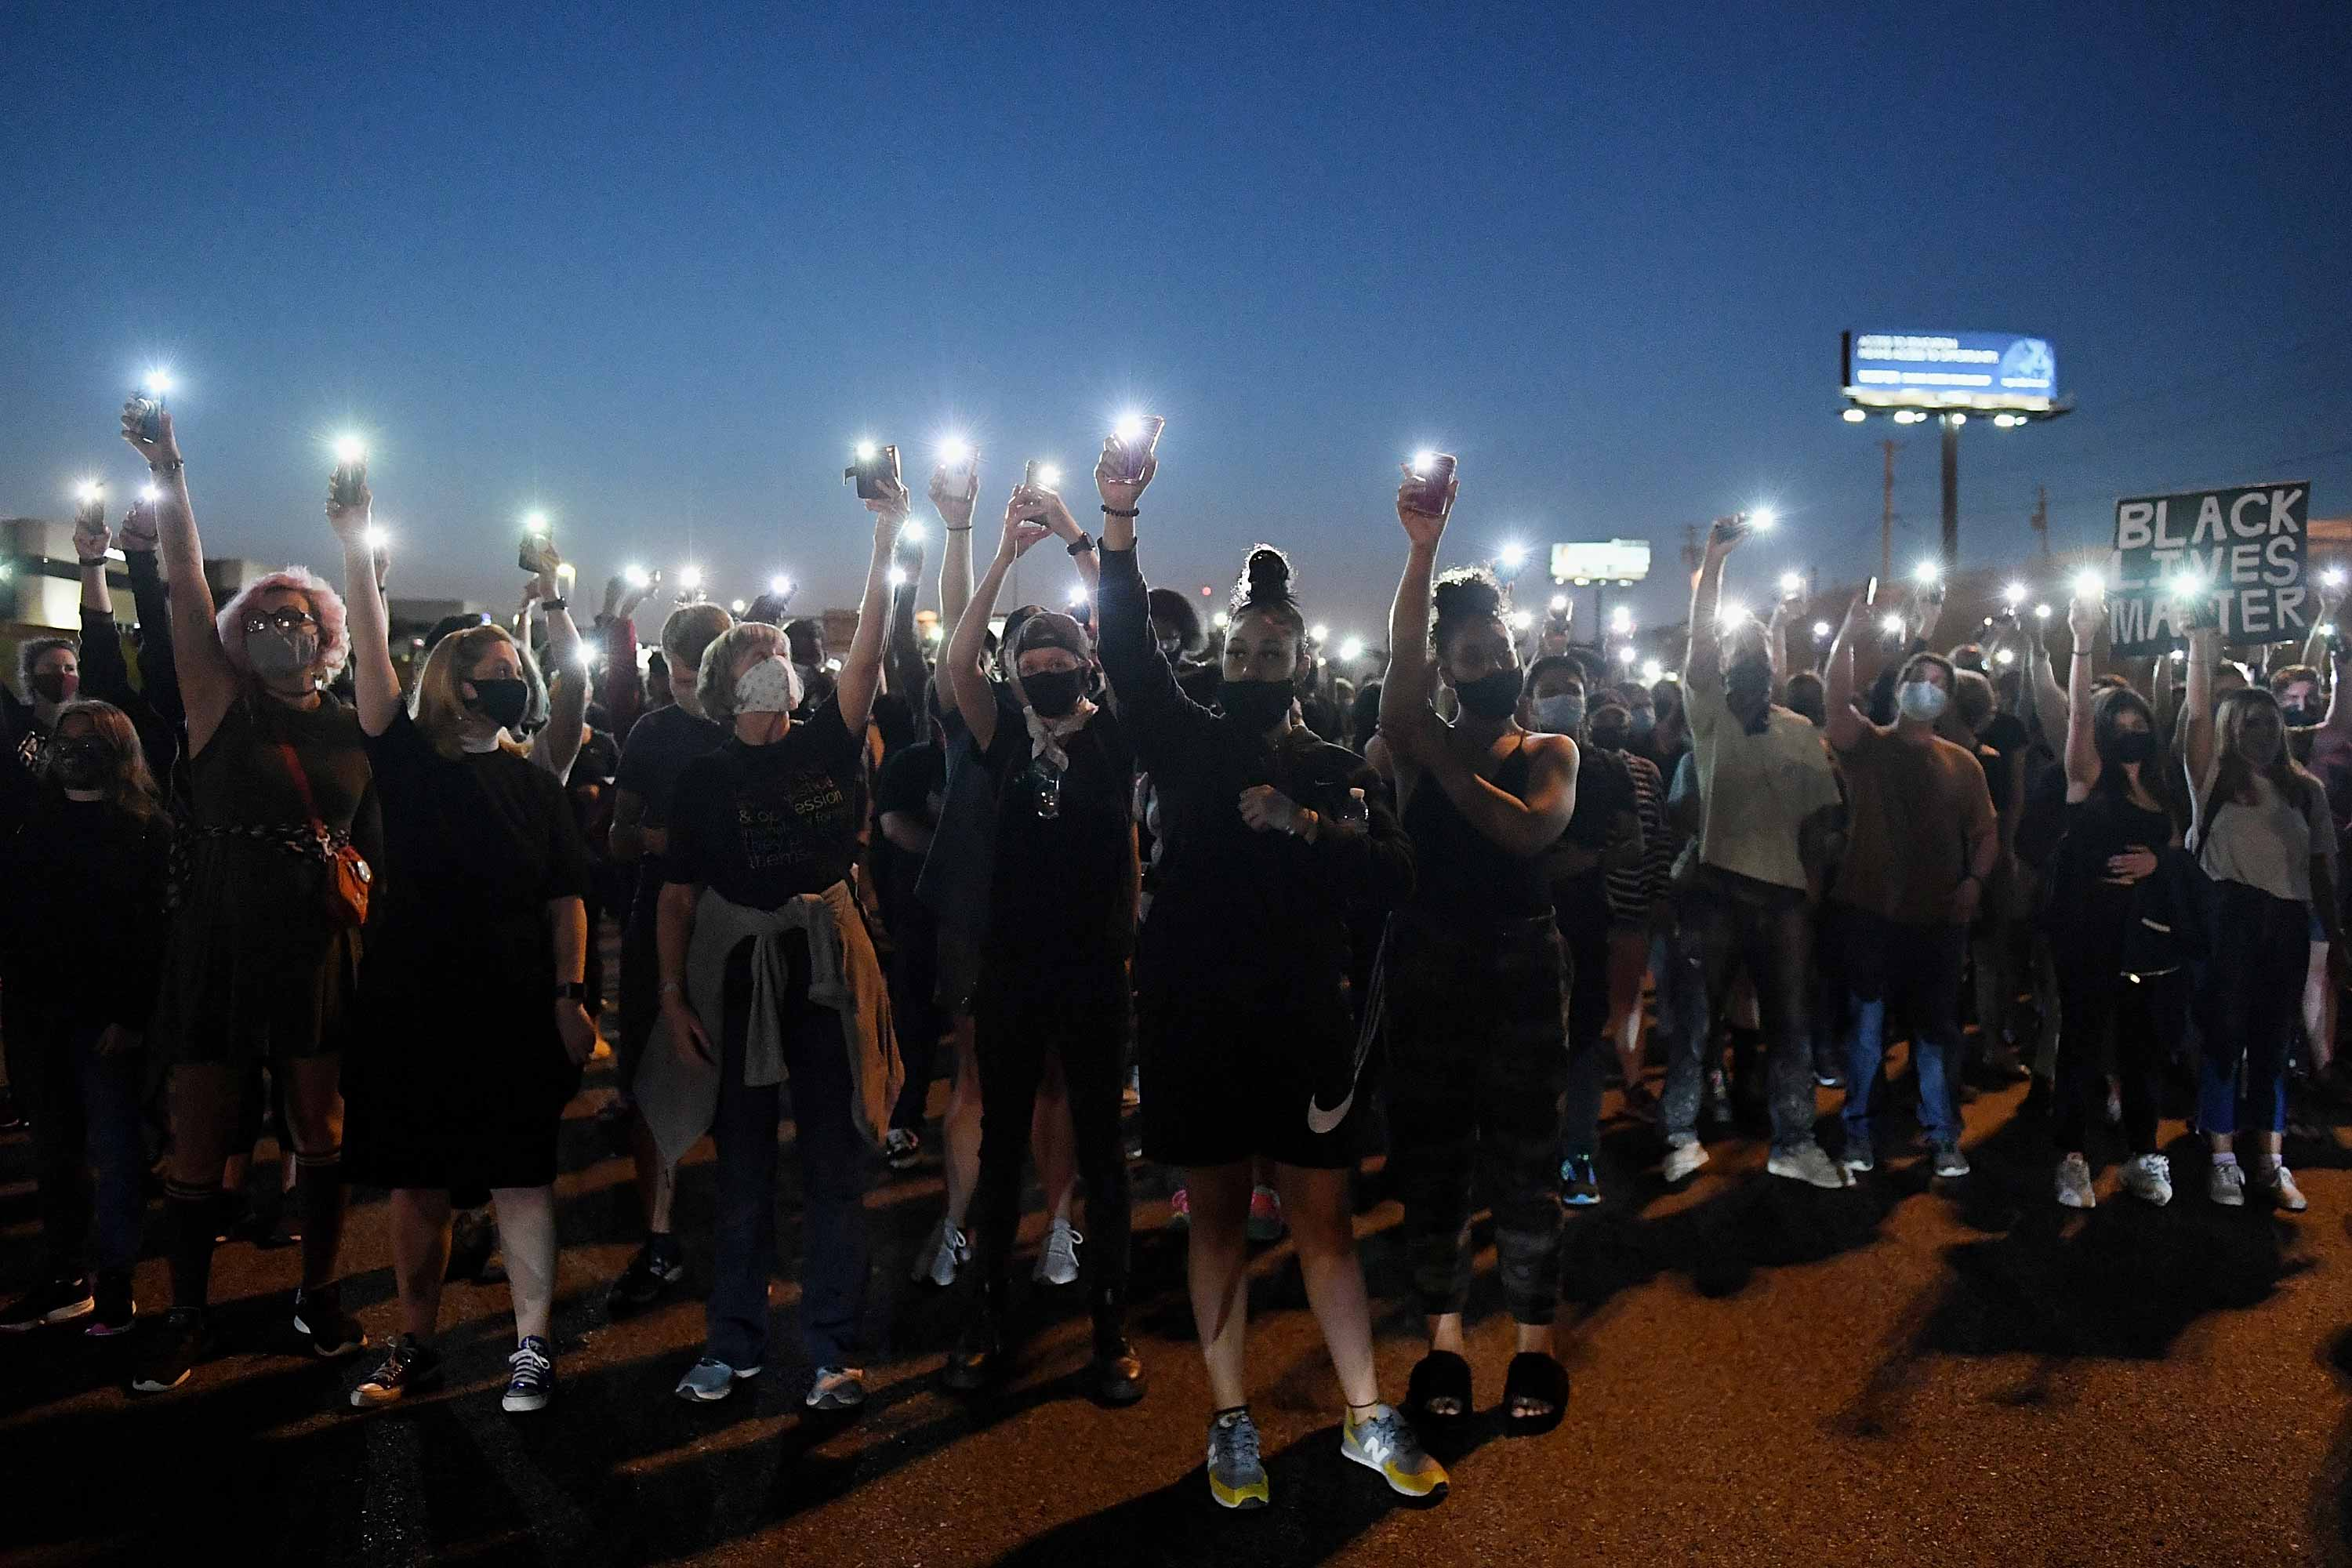 Demonstrators wearing protective masks raise their phones with their flashlights in a crowd dotted with lights.